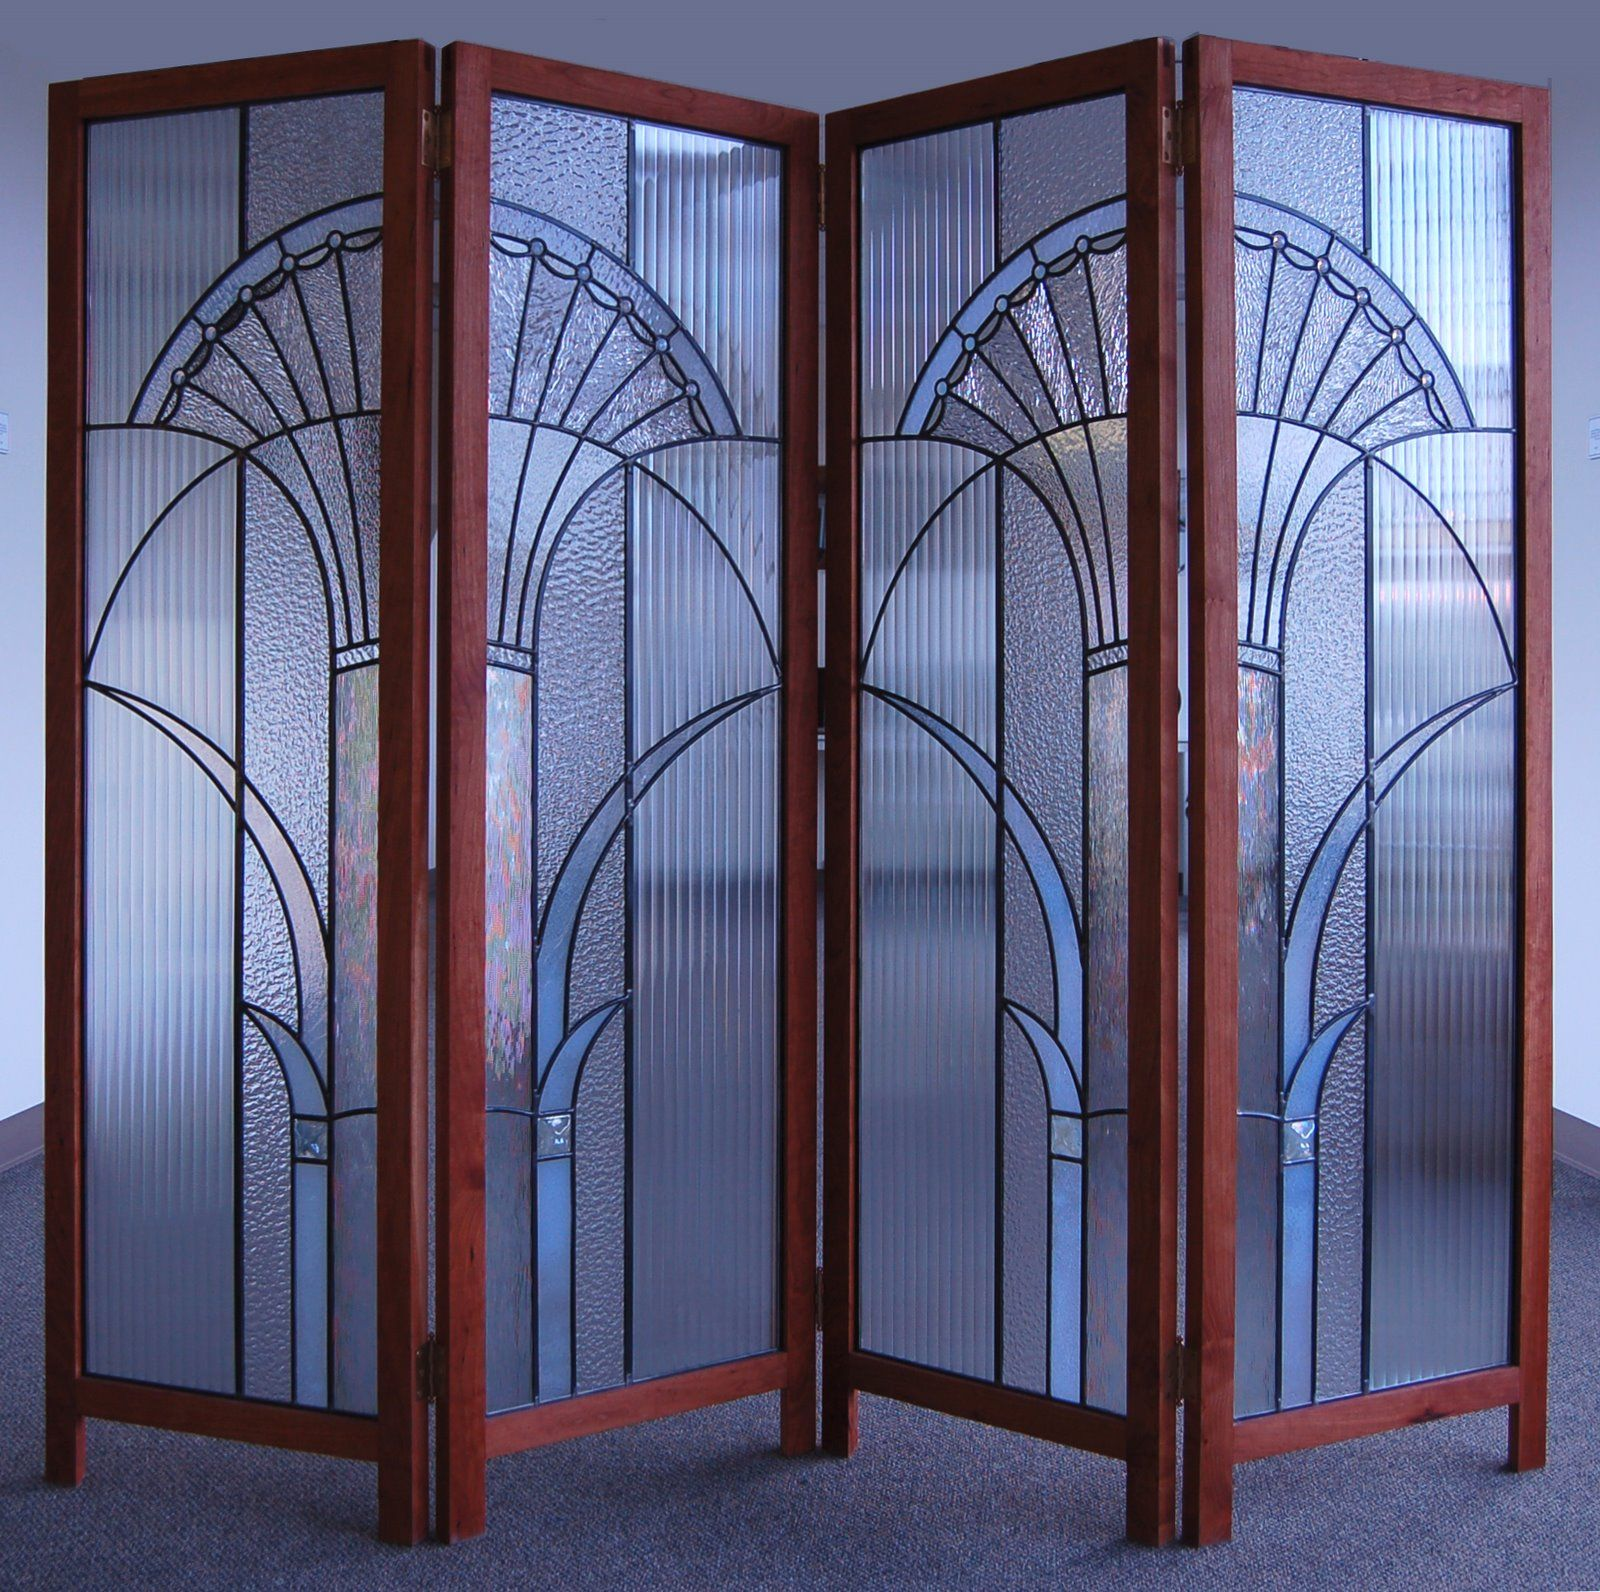 Tiffany style room divider arts u craftsmission pinterest